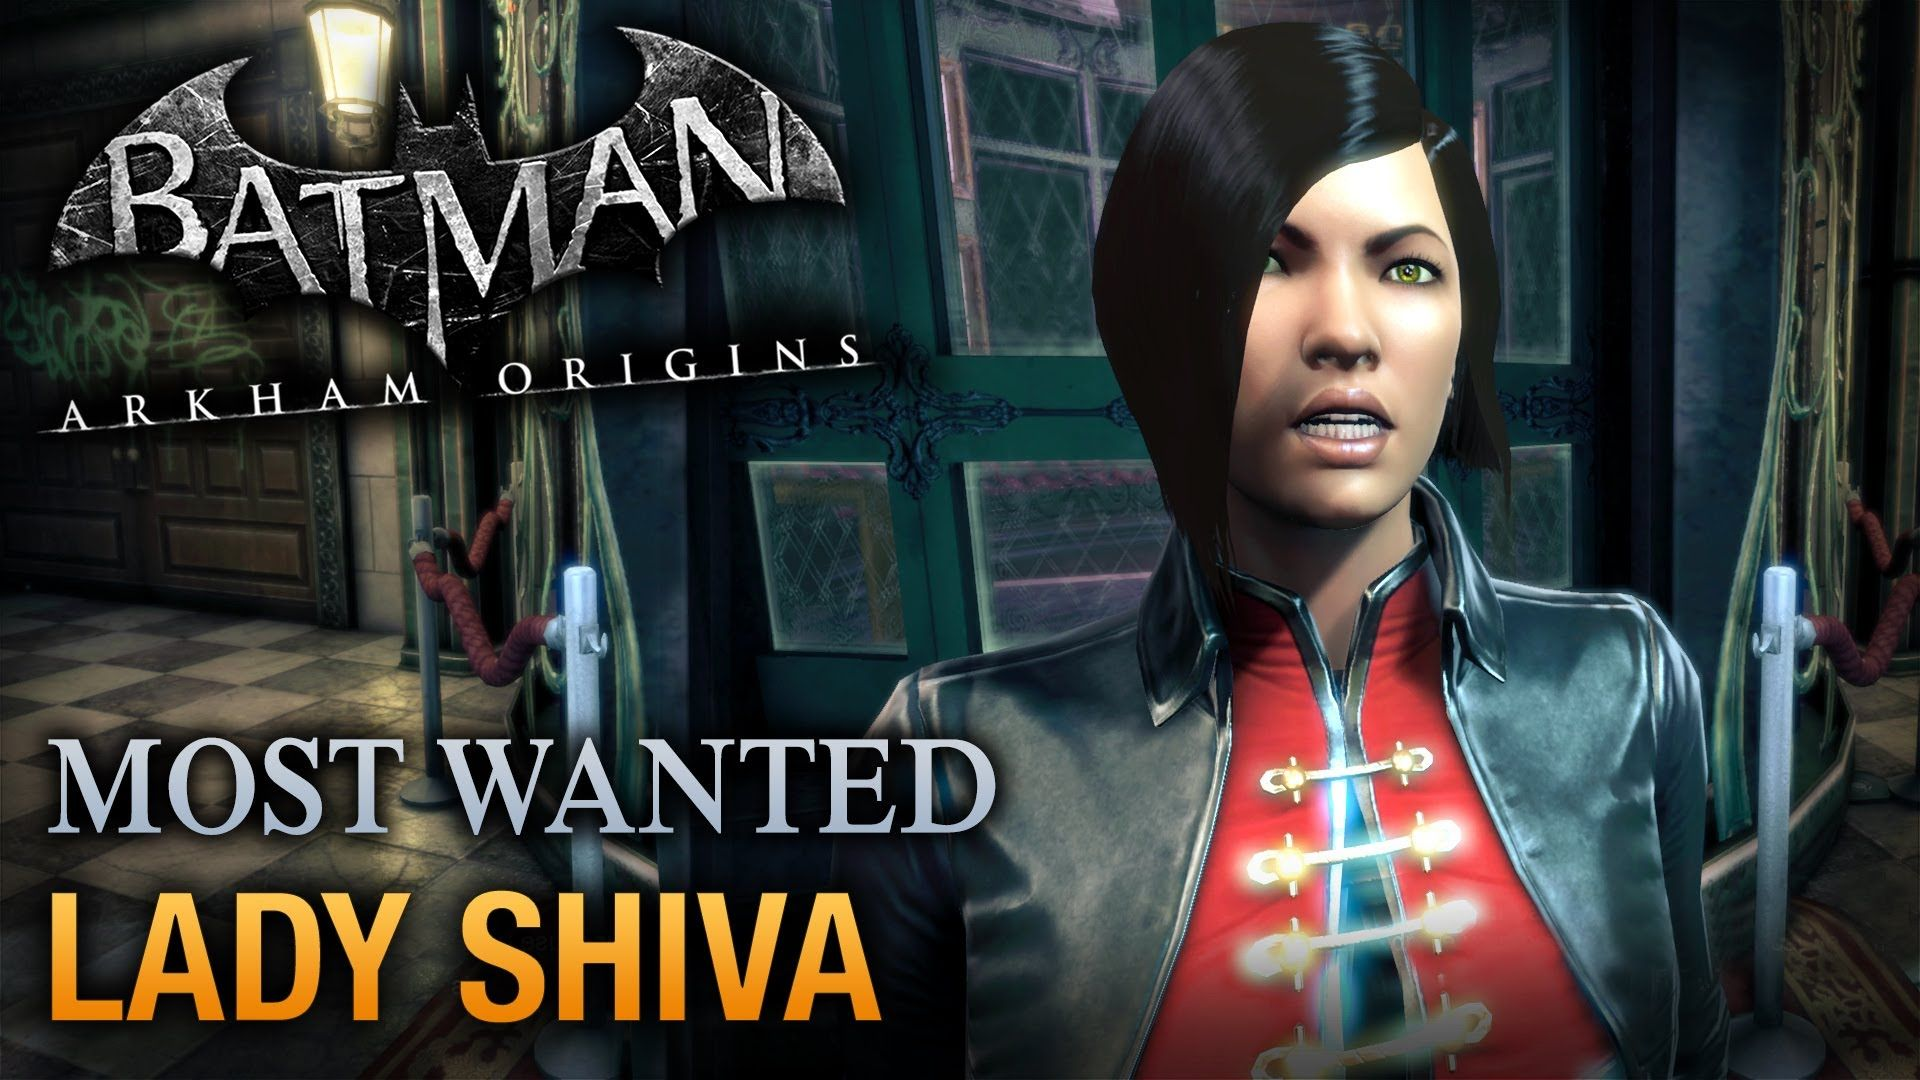 Batman: Arkham Origins - Shiva (Most Wanted Walkthrough)